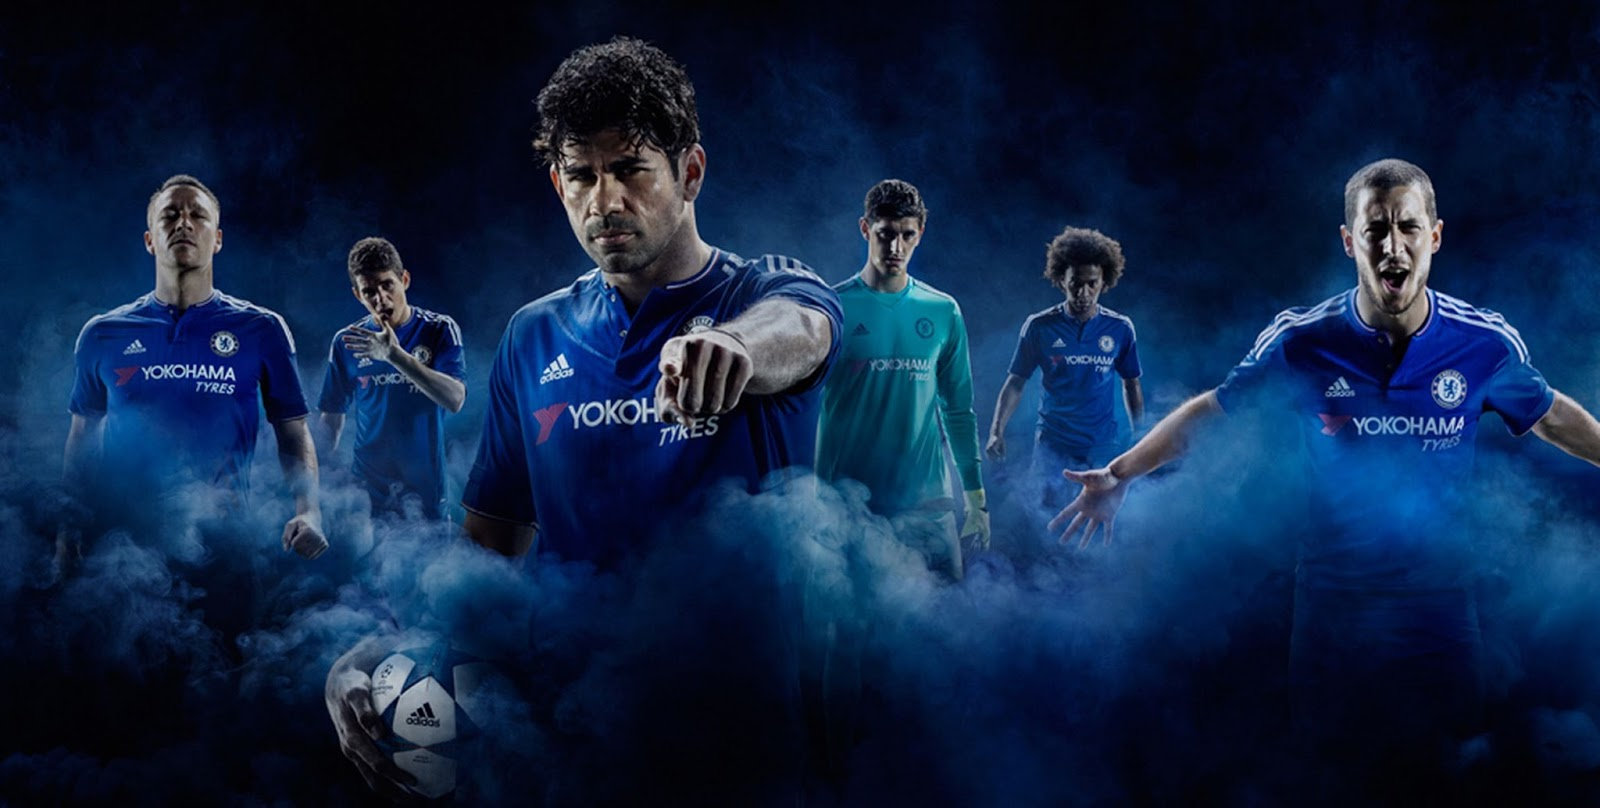 Pro soccer chelsea home 15 16 by adidas for Home wallpaper 2016